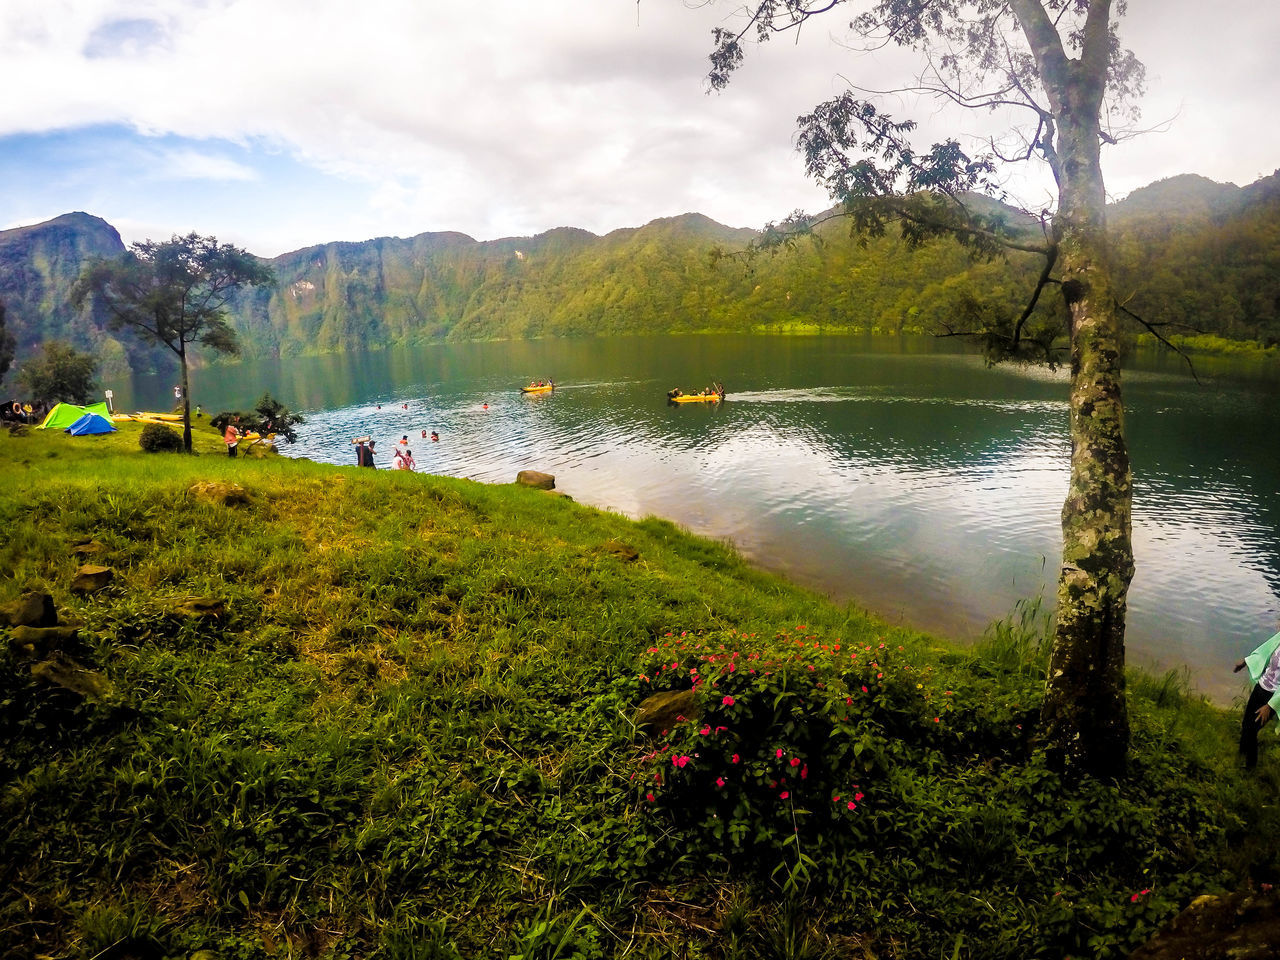 This view though. :) Beauty In Nature Day Grass Growth Lake Lake Holon Lake View Lakes  Landscape Lush - Description Mirror Lake Mountain Natural Parkland Nature No People Outdoors Reflection Scenics Sky Tree Water